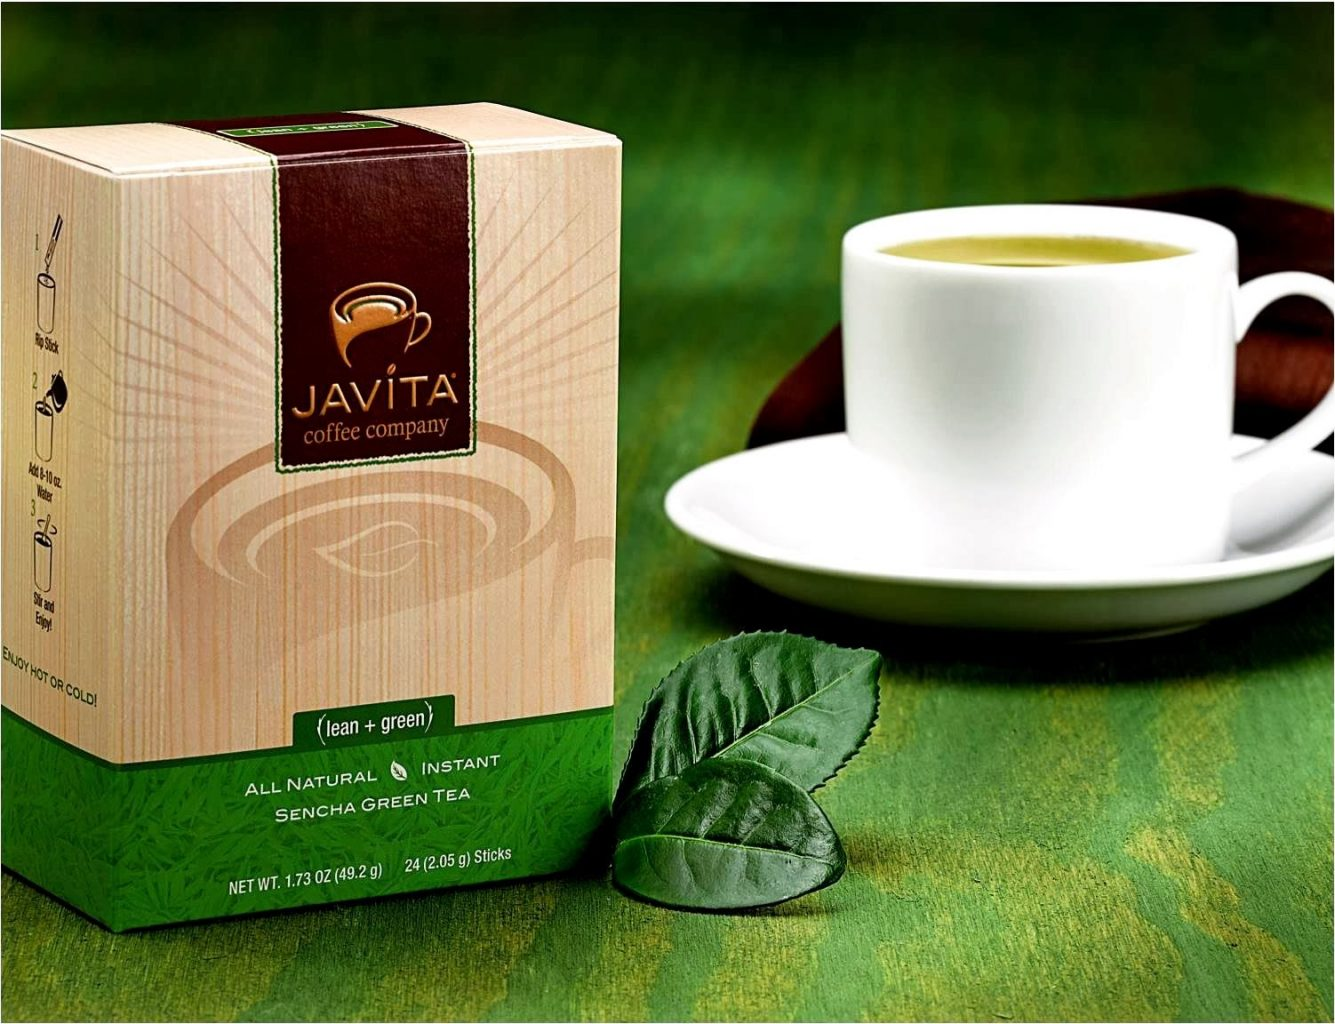 javita-green-tea-box